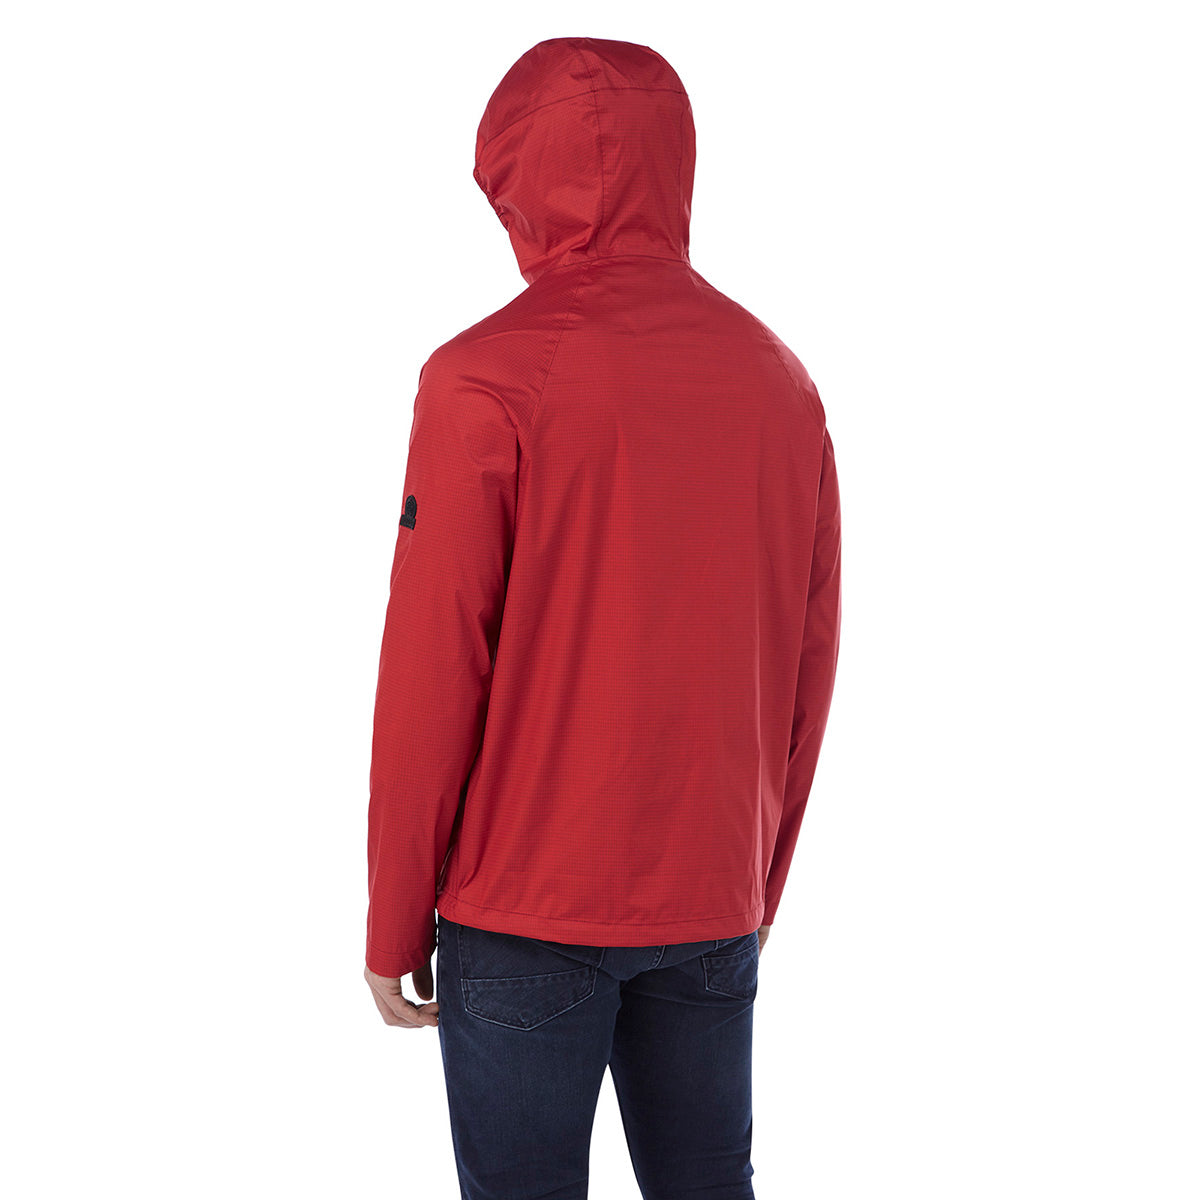 Stern Mens Performance Waterproof Jacket - Chilli Red image 4